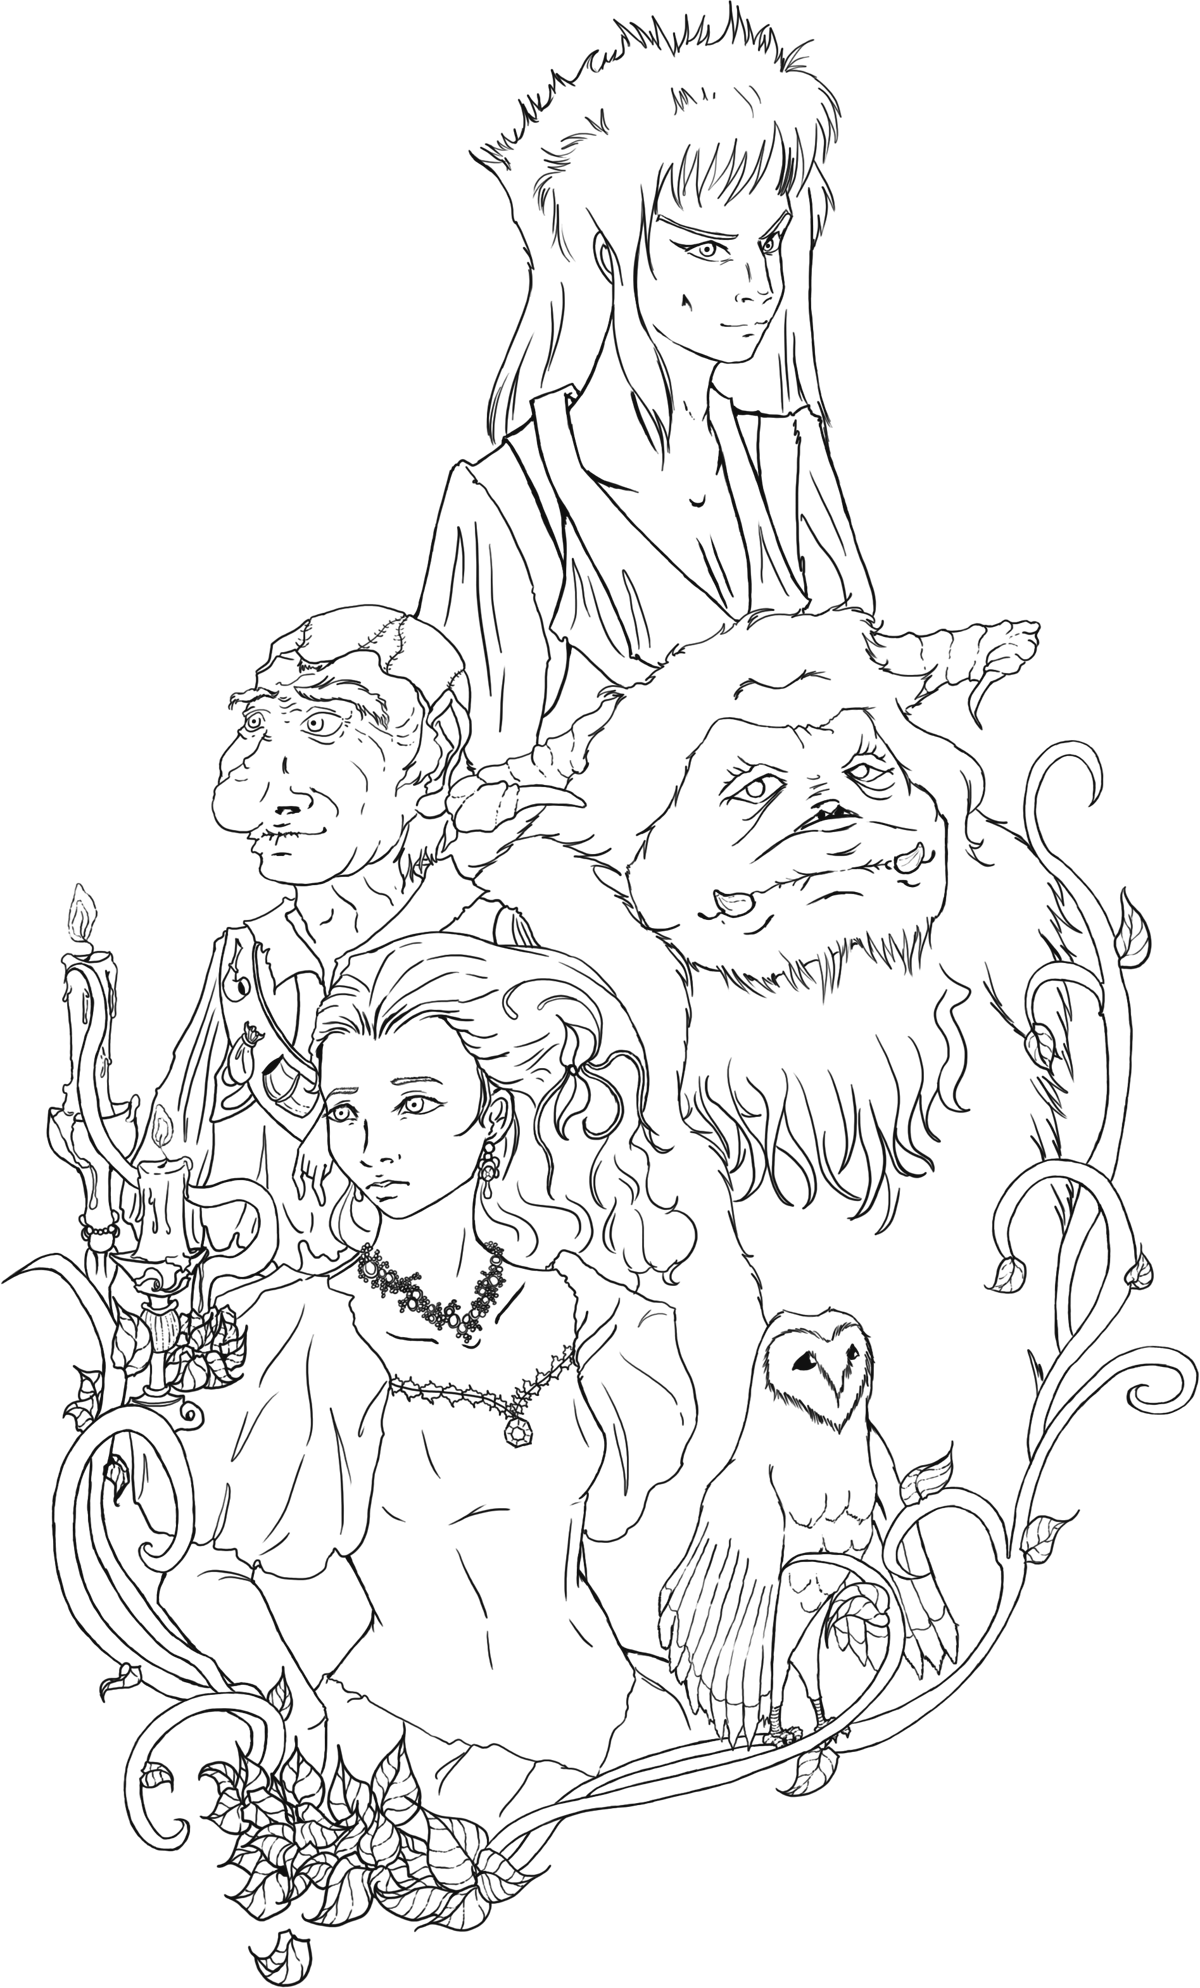 Shak line art labyrinth by lonelymori on deviantart for Labyrinth coloring pages